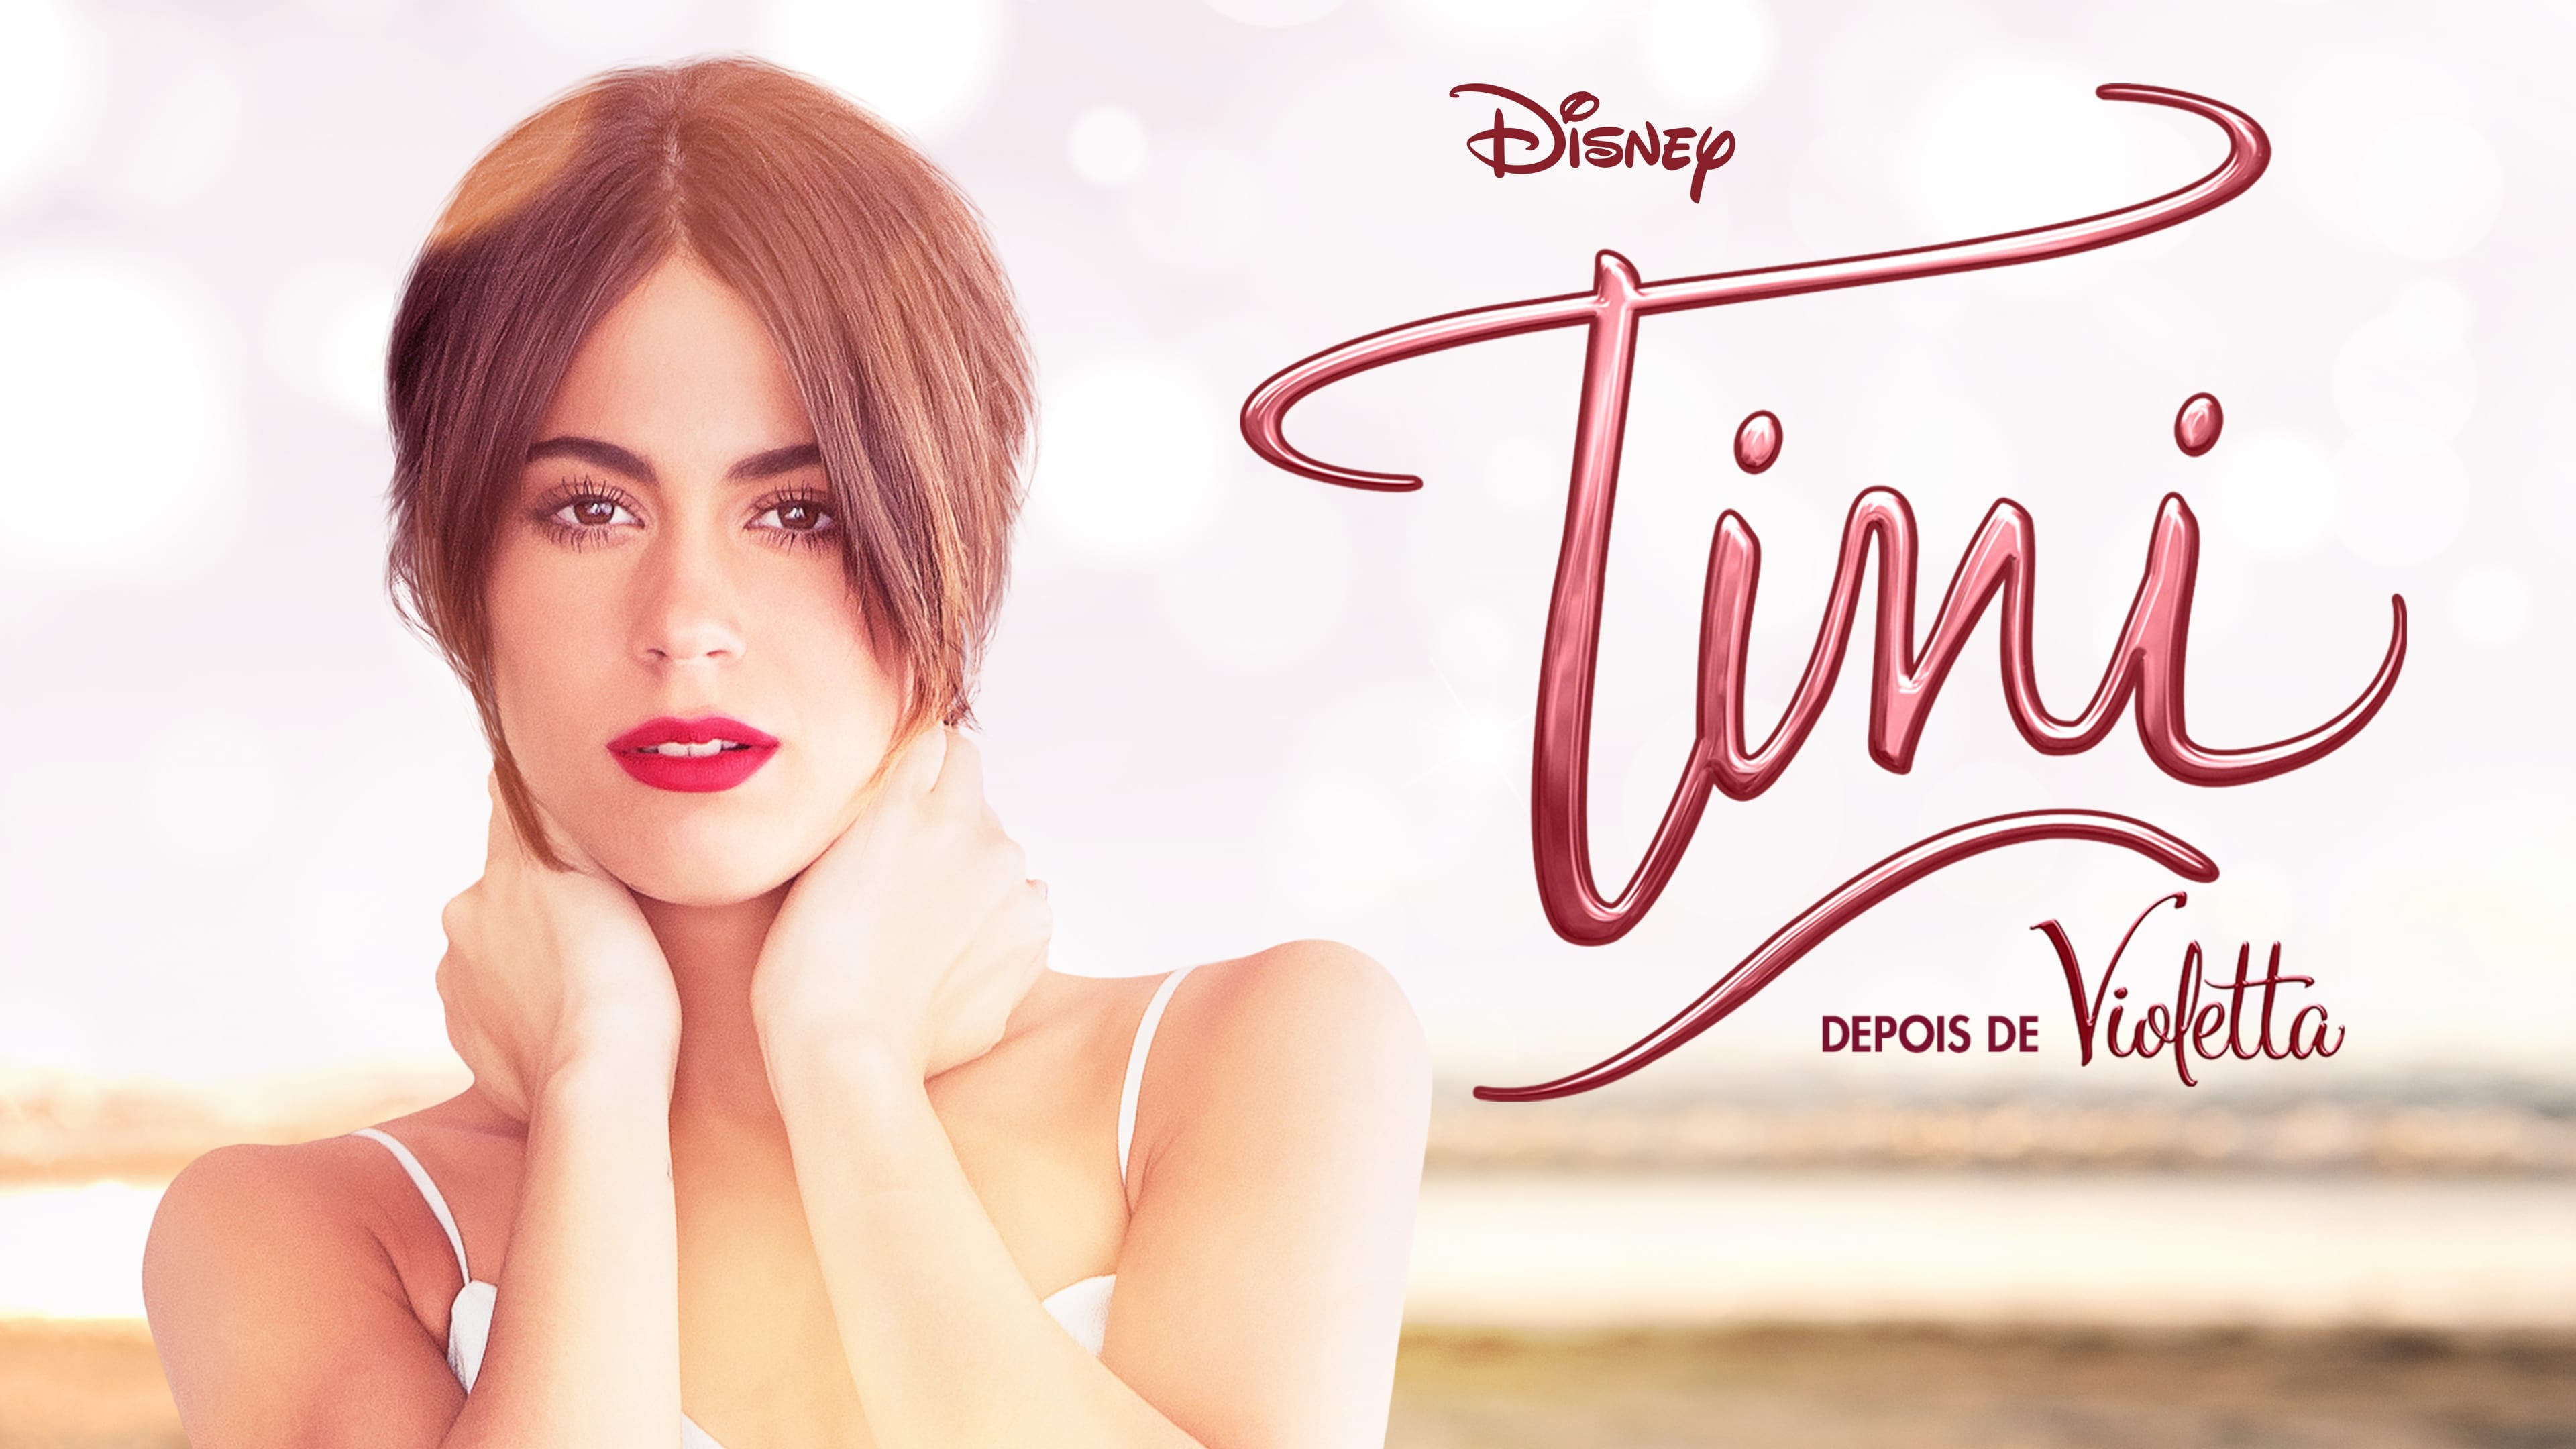 Backgrounds and walpapers Tini: The New Life of Violetta